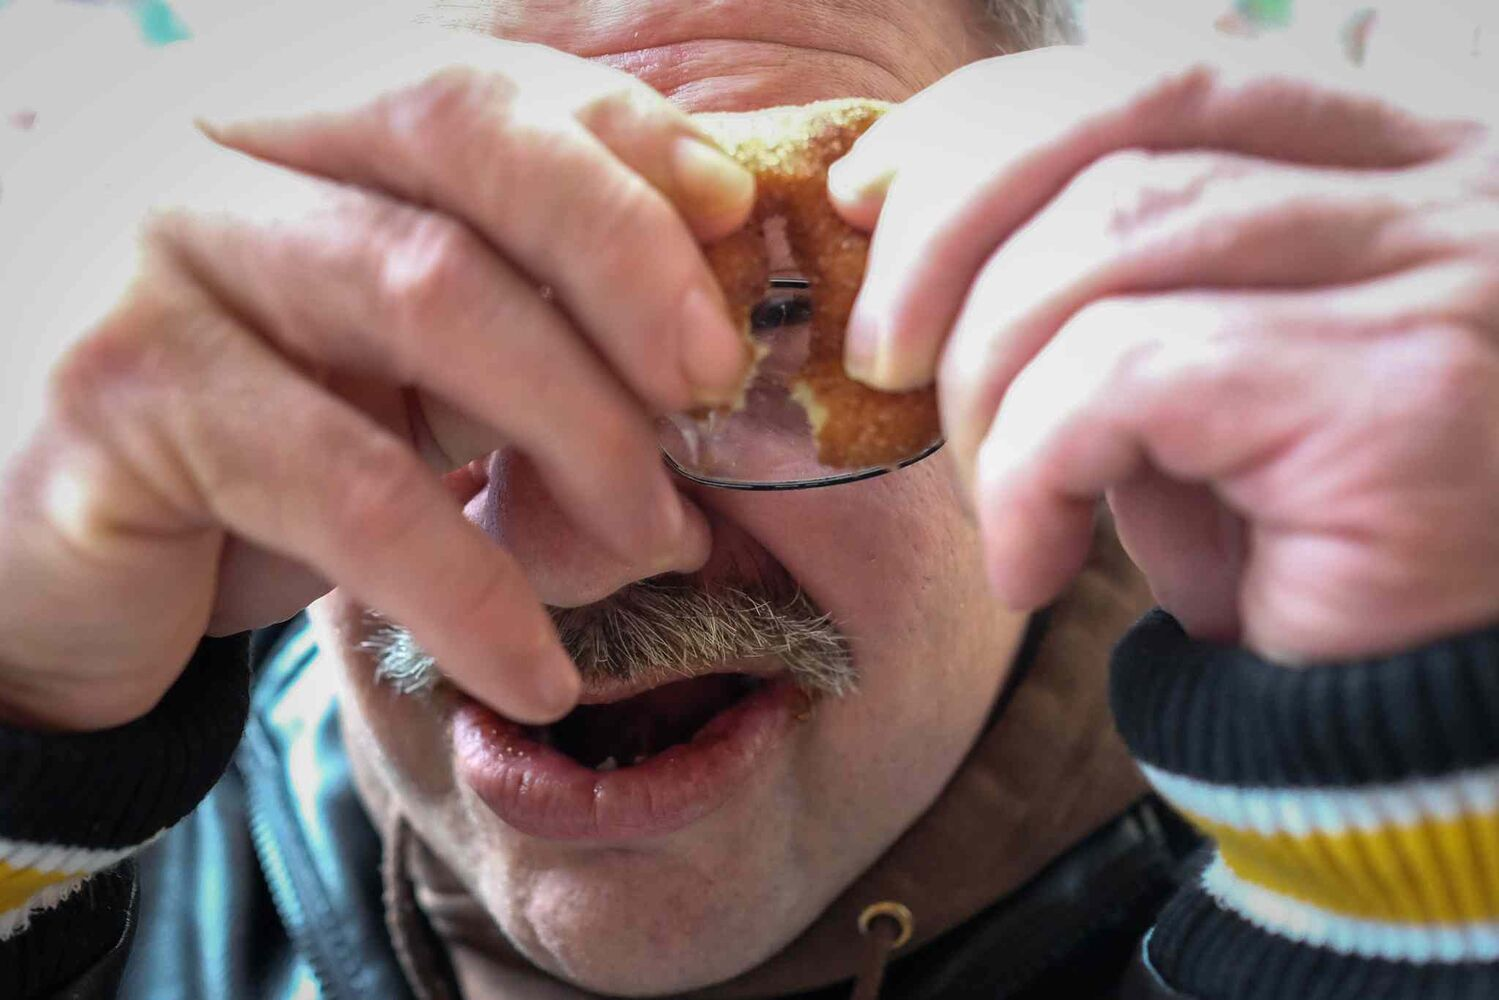 Whenever Cathy and Tom go to The Forks they get mini-donuts as a treat. Tom loves his mini-donuts.